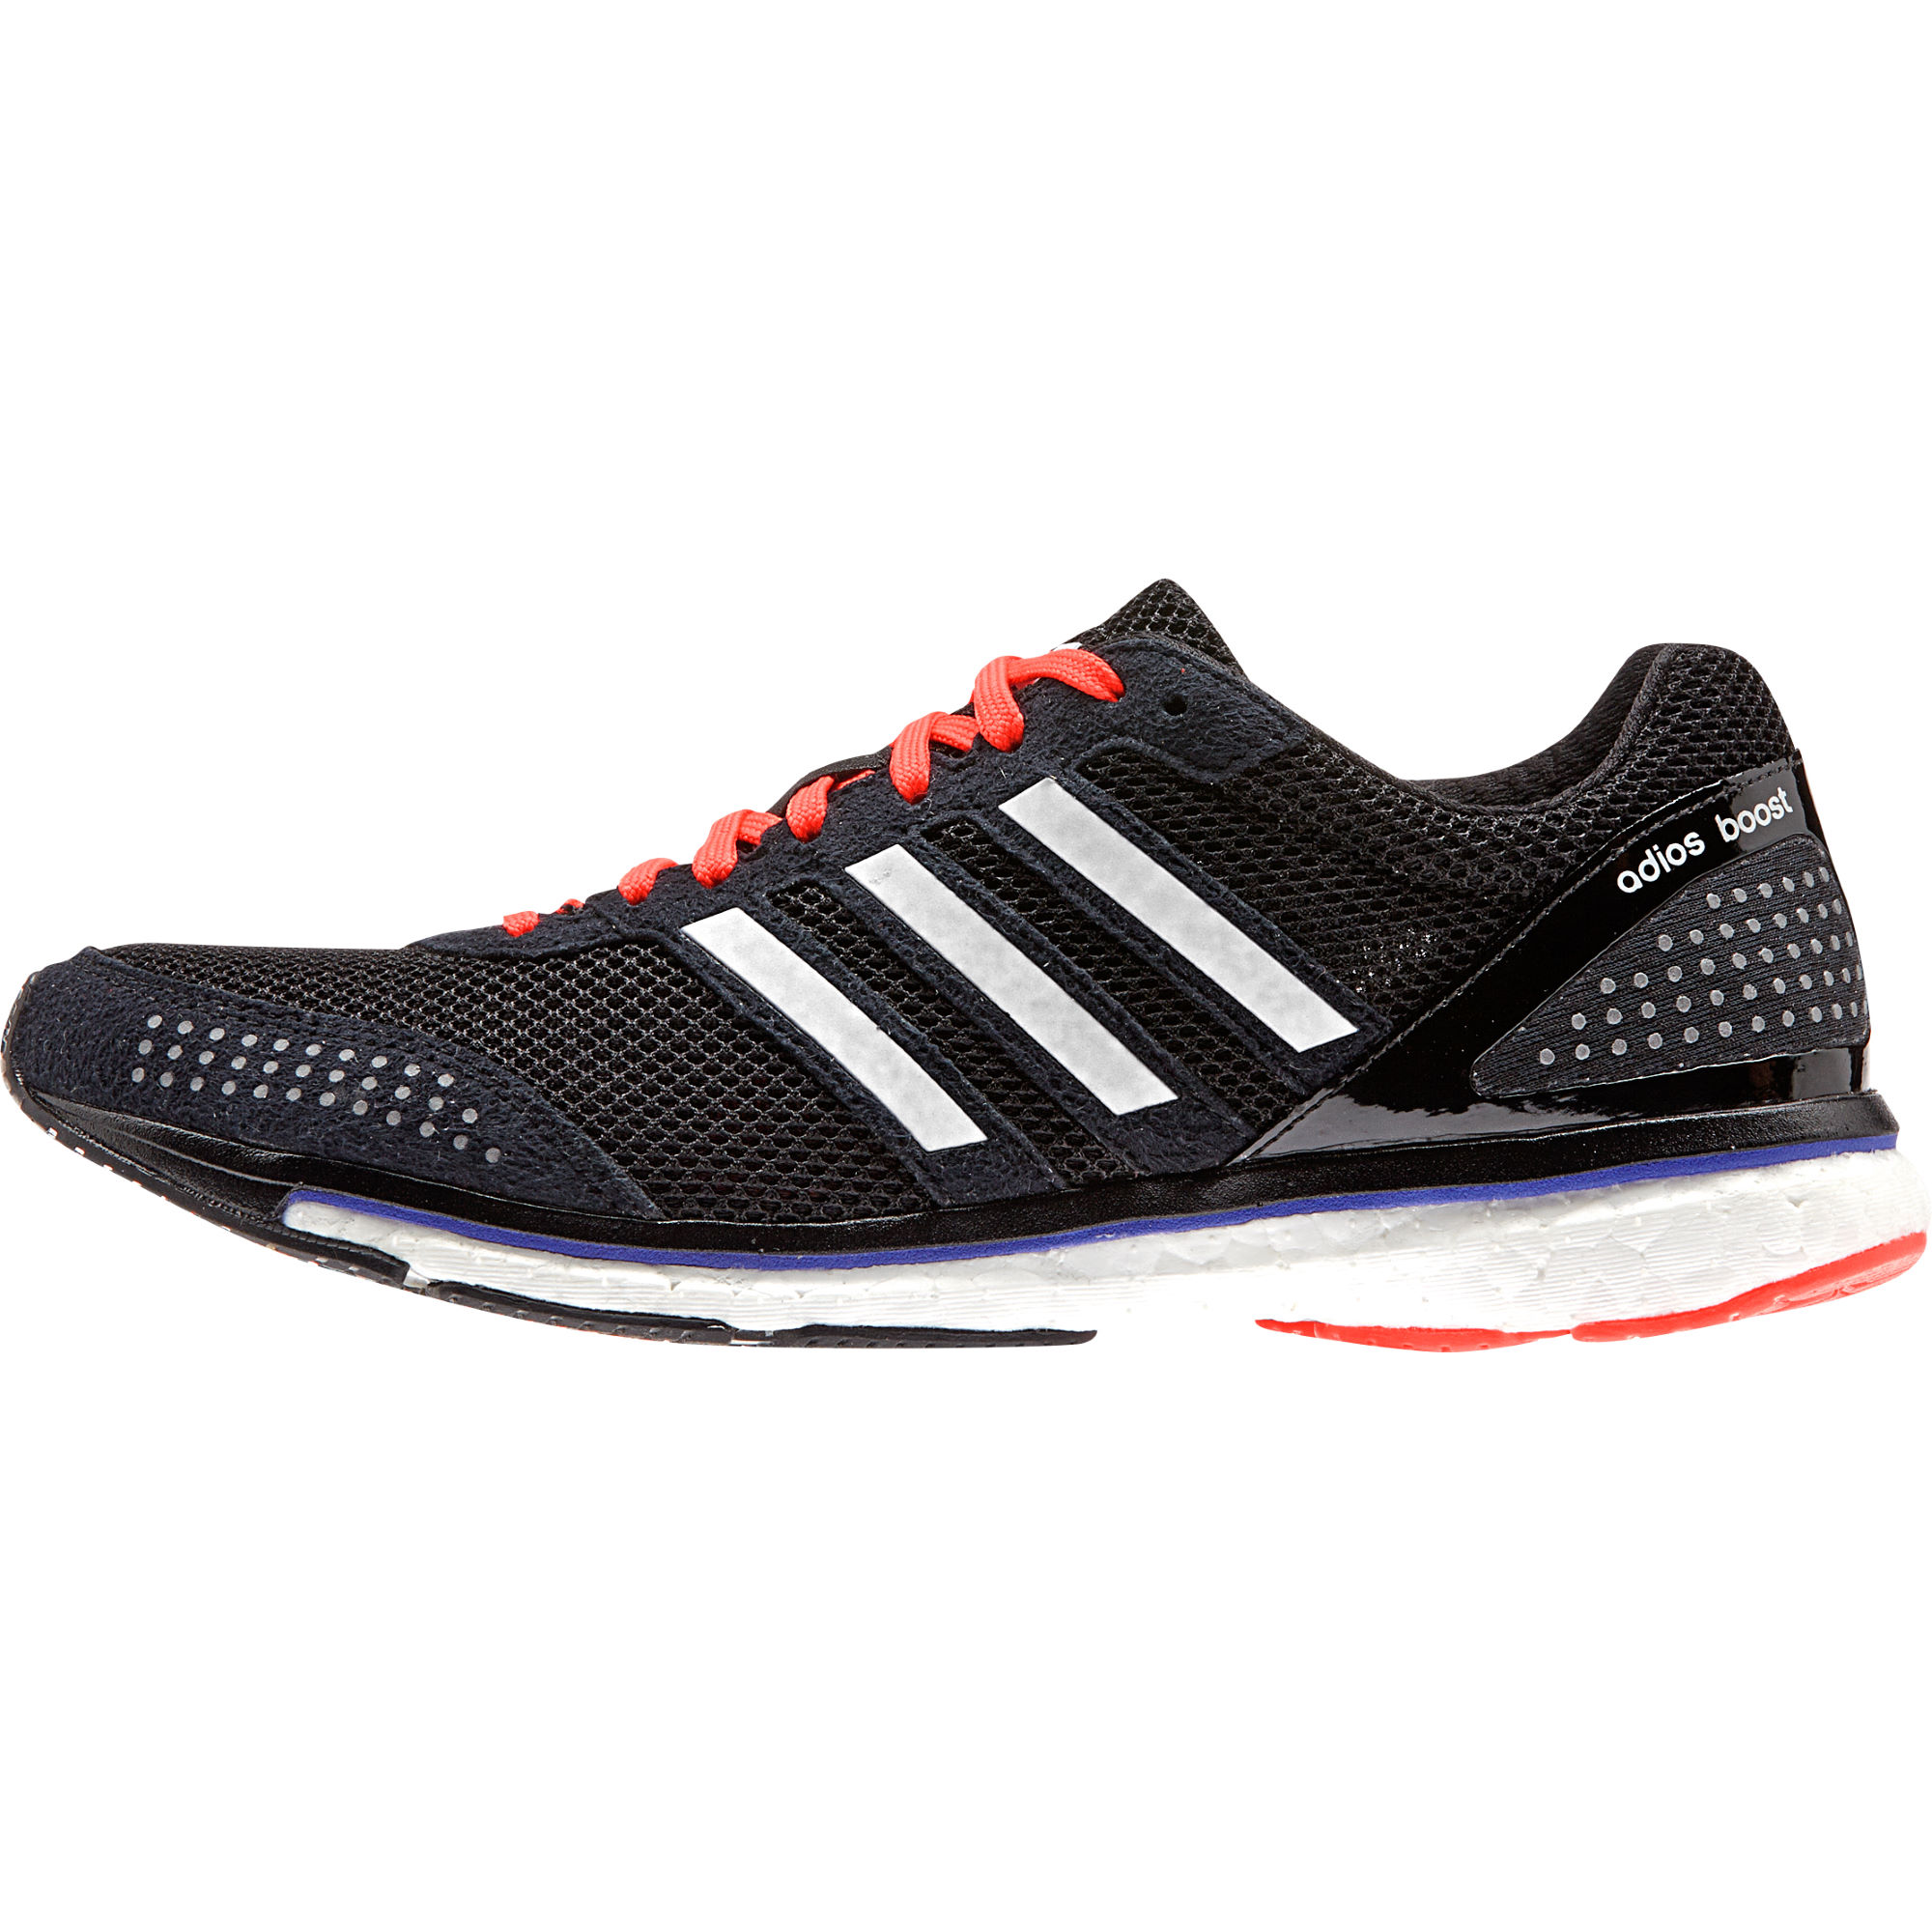 check out dcc27 2e68e adidas boost 2 running